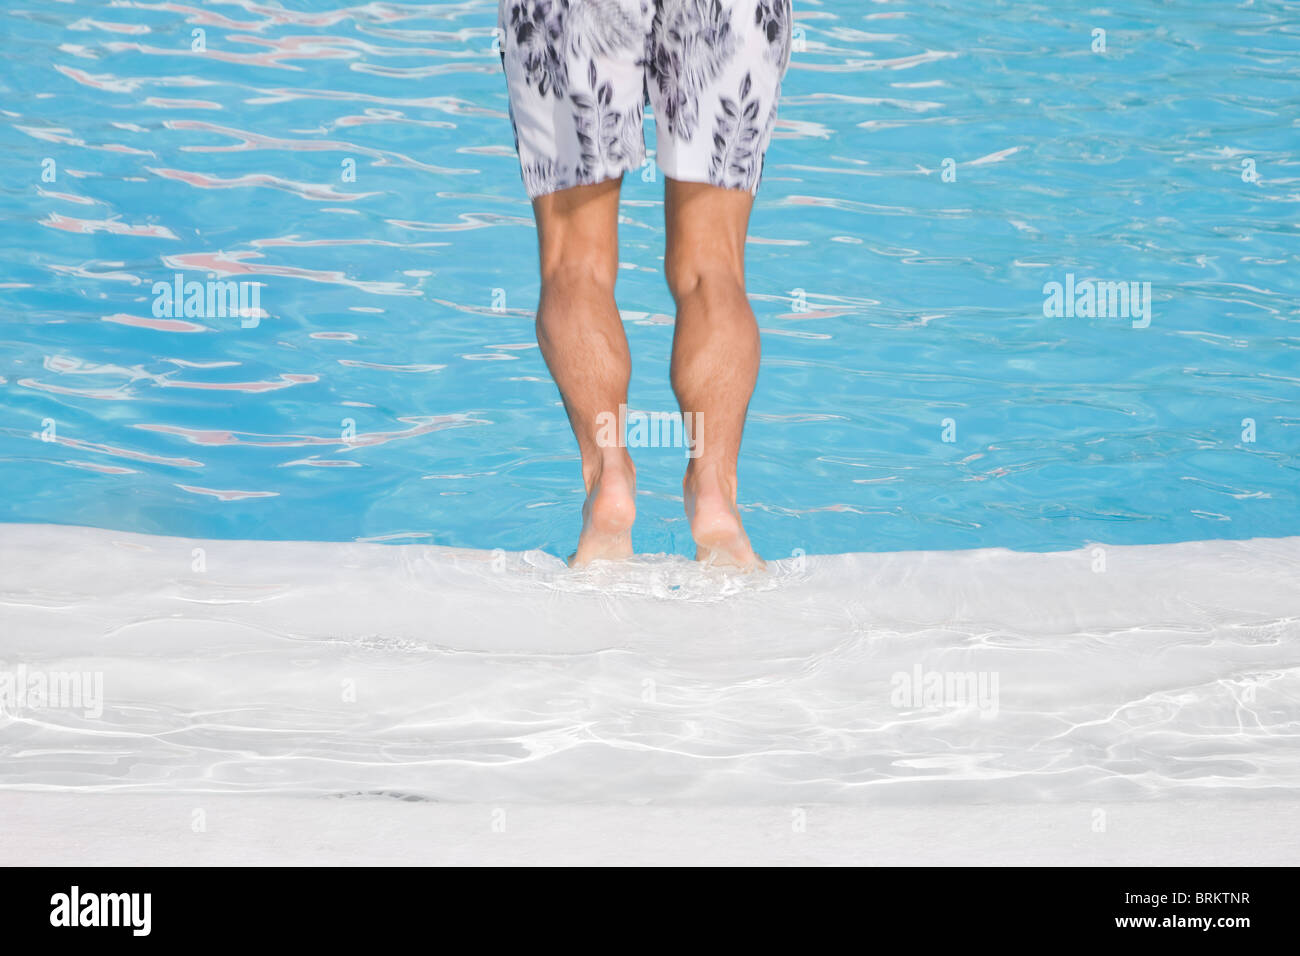 Man diving into a blue pool in black and white shorts - Stock Image